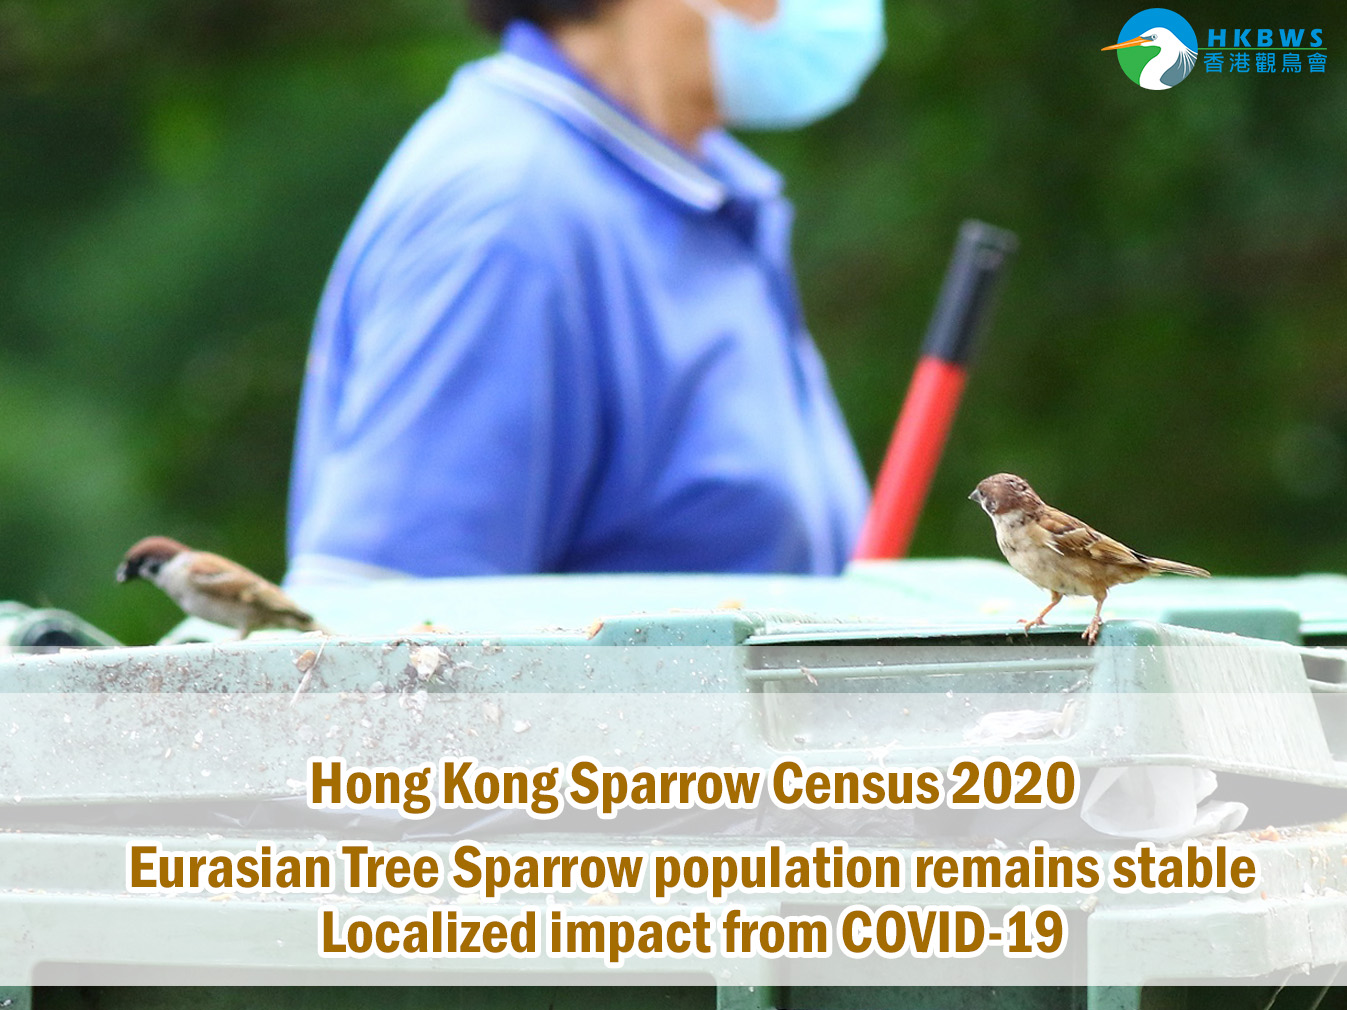 Sparrow Census 2020 - Eurasian Tree Sparrow population remains stable Localized impact from COVID-19